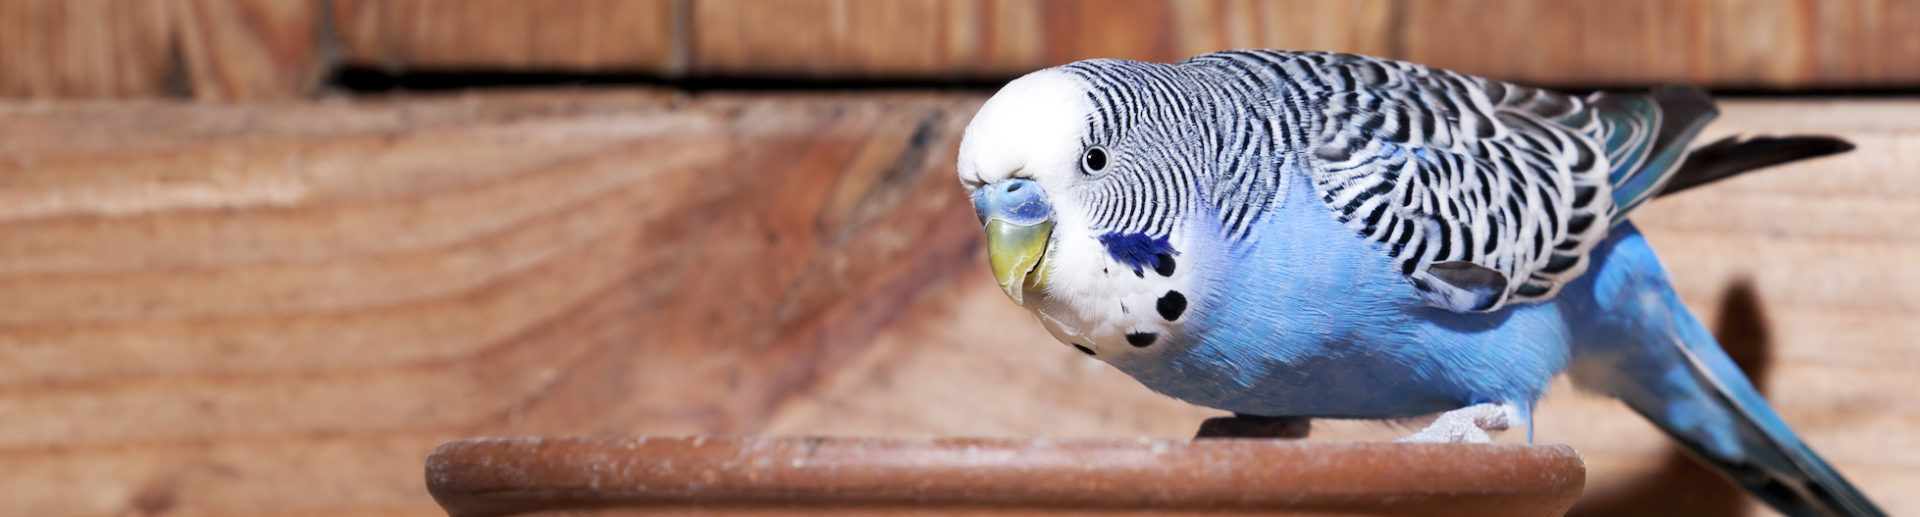 Caring for pet birds a few helpful tips hartz for Fish usa coupon code